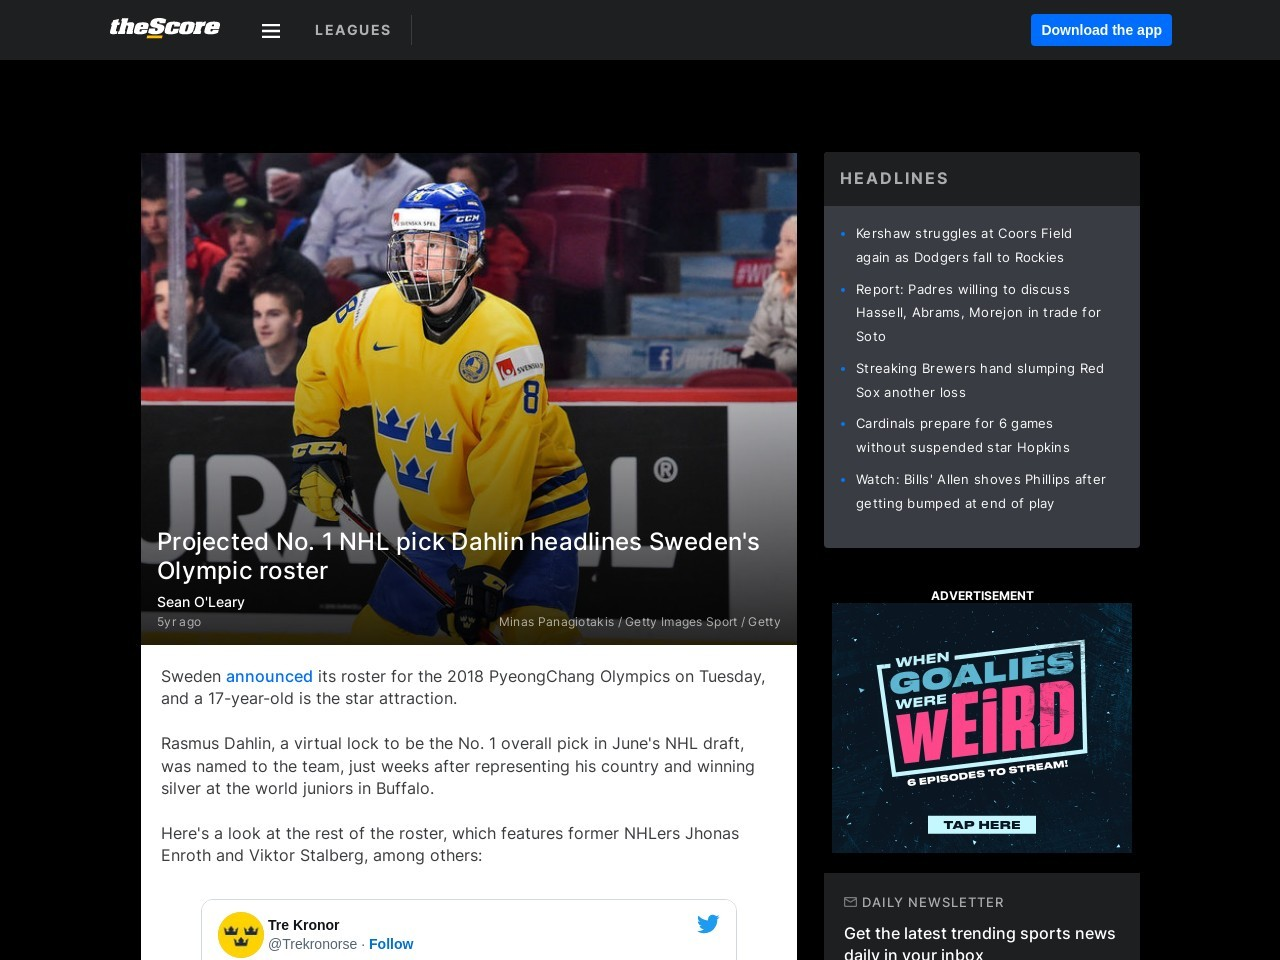 Projected No. 1 NHL pick Dahlin headlines Sweden's Olympic roster